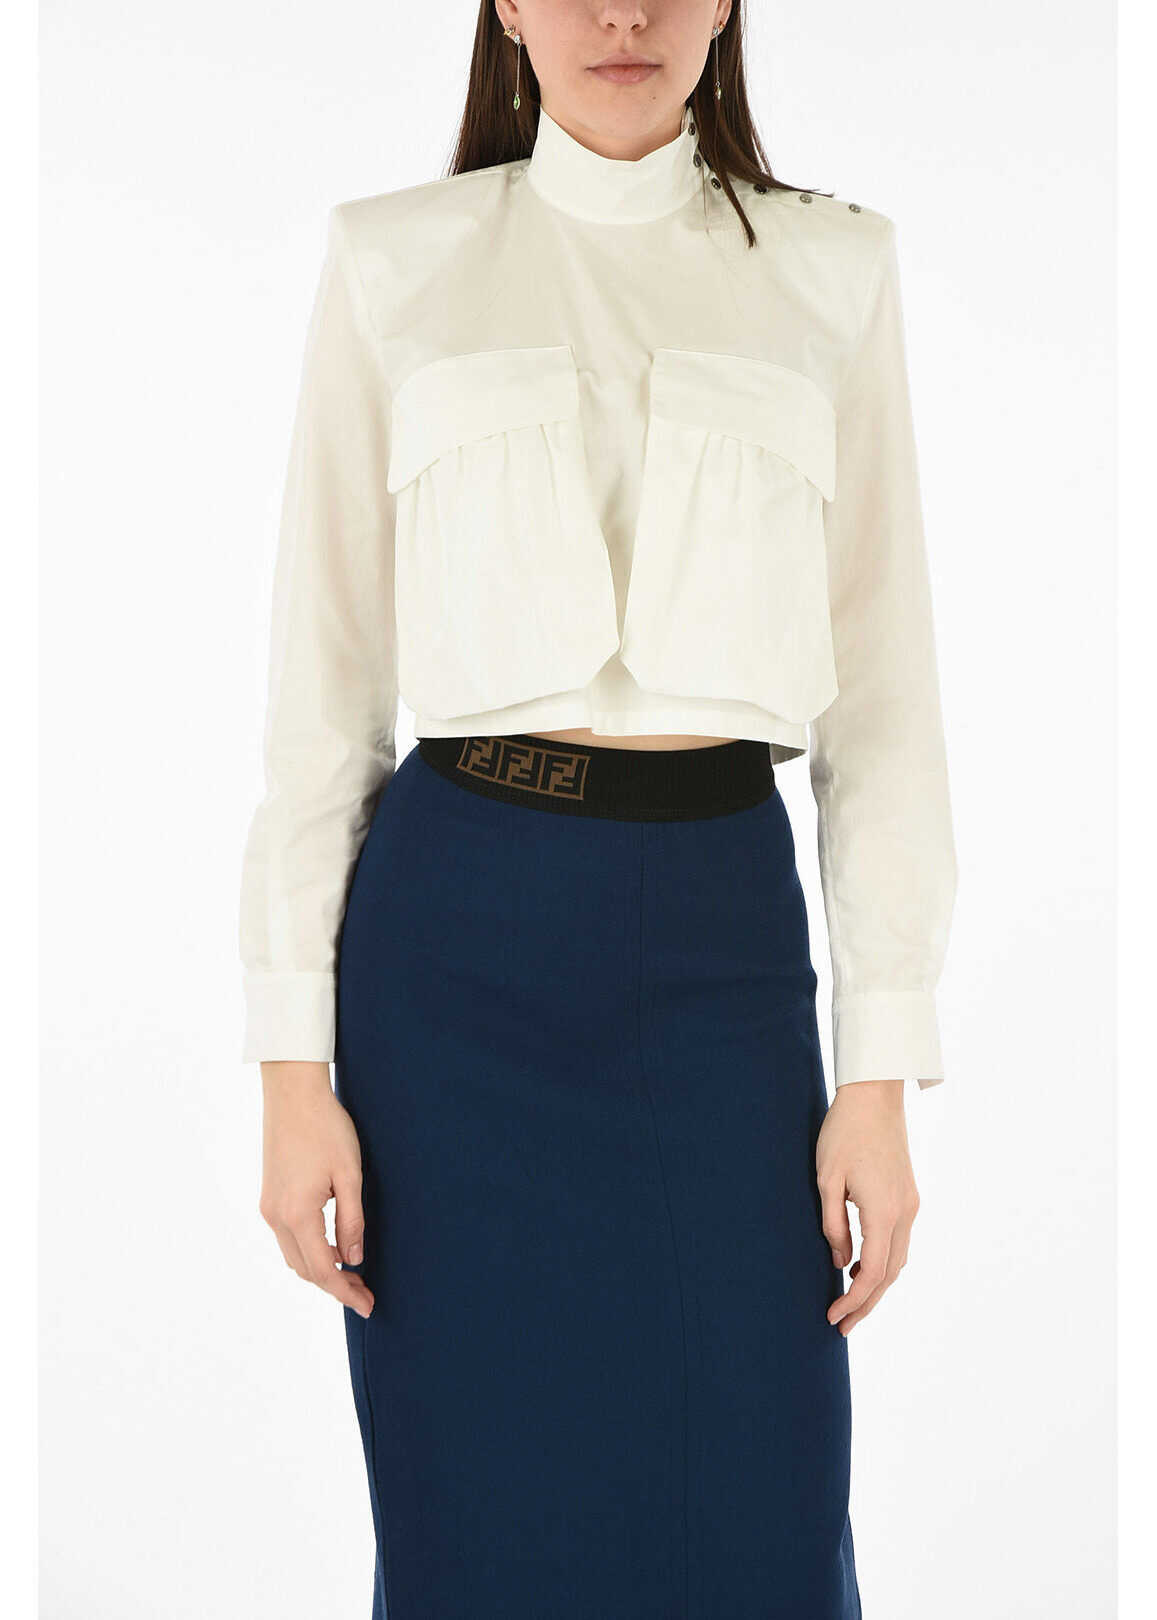 Fendi cossack shirt WHITE